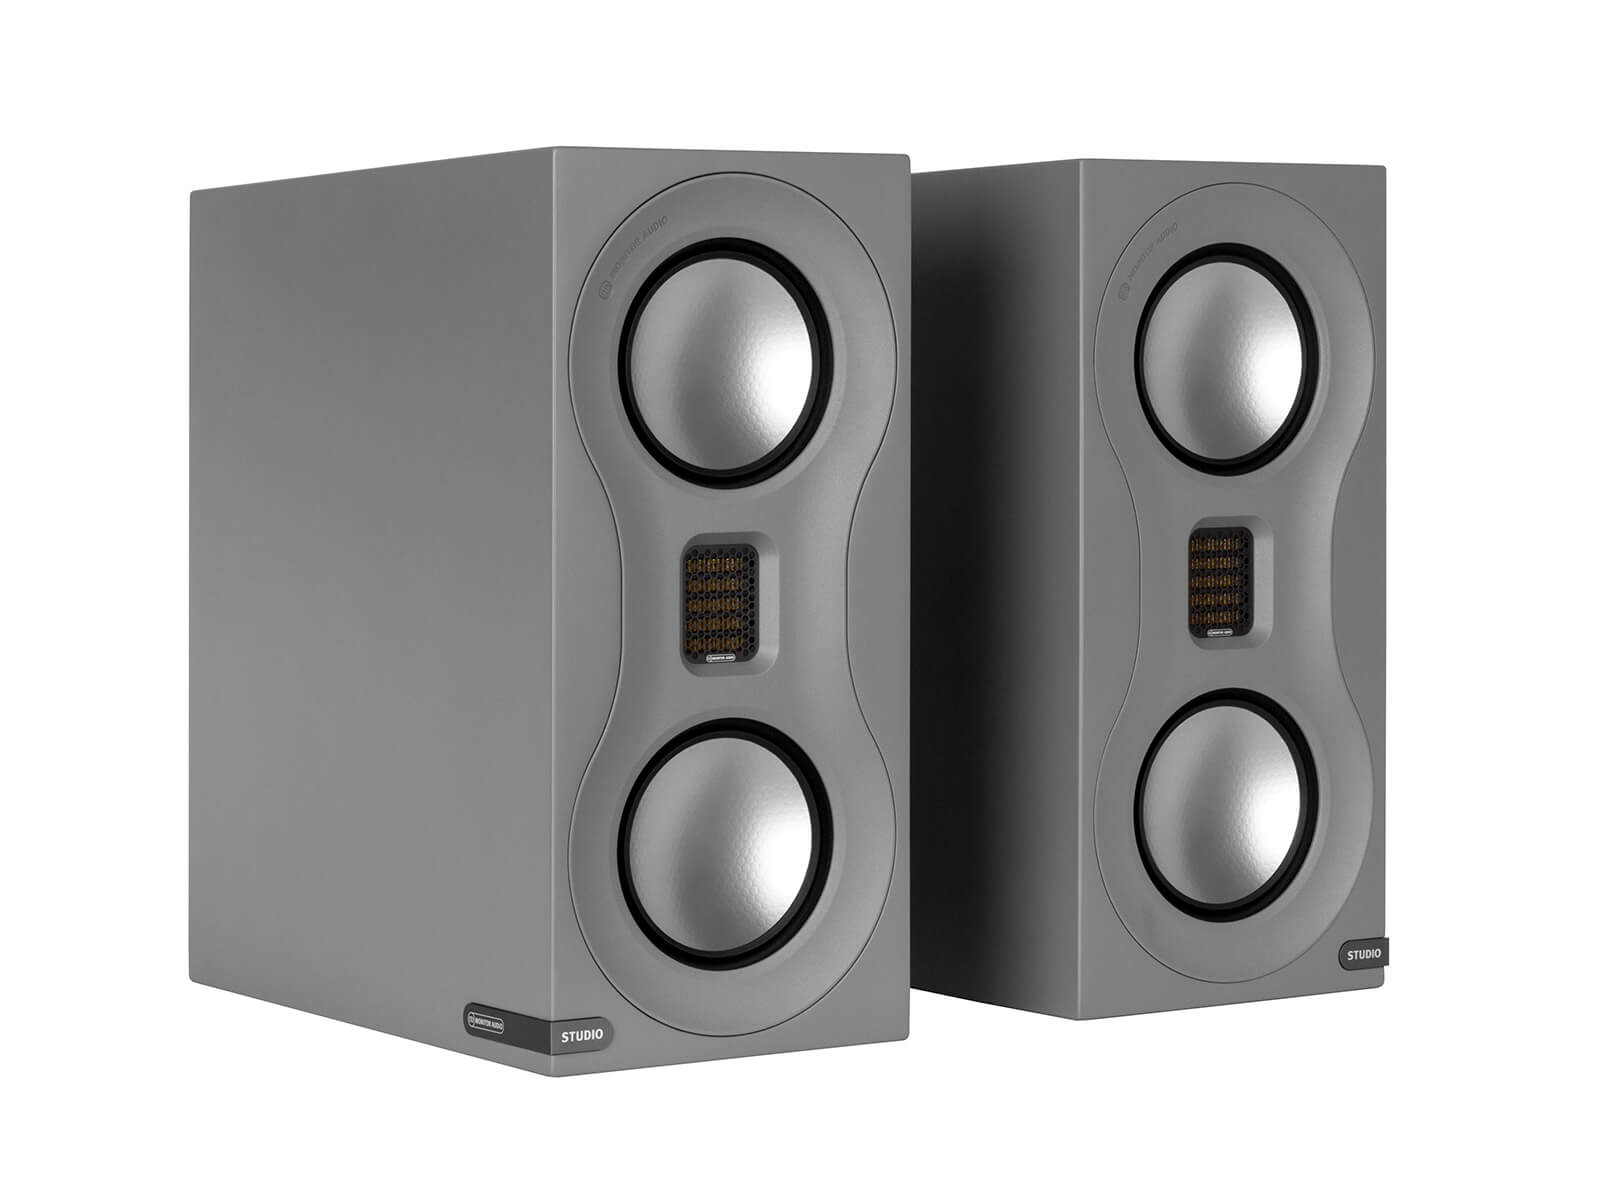 Studio, bookshelf speakers, with a satin grey finish.